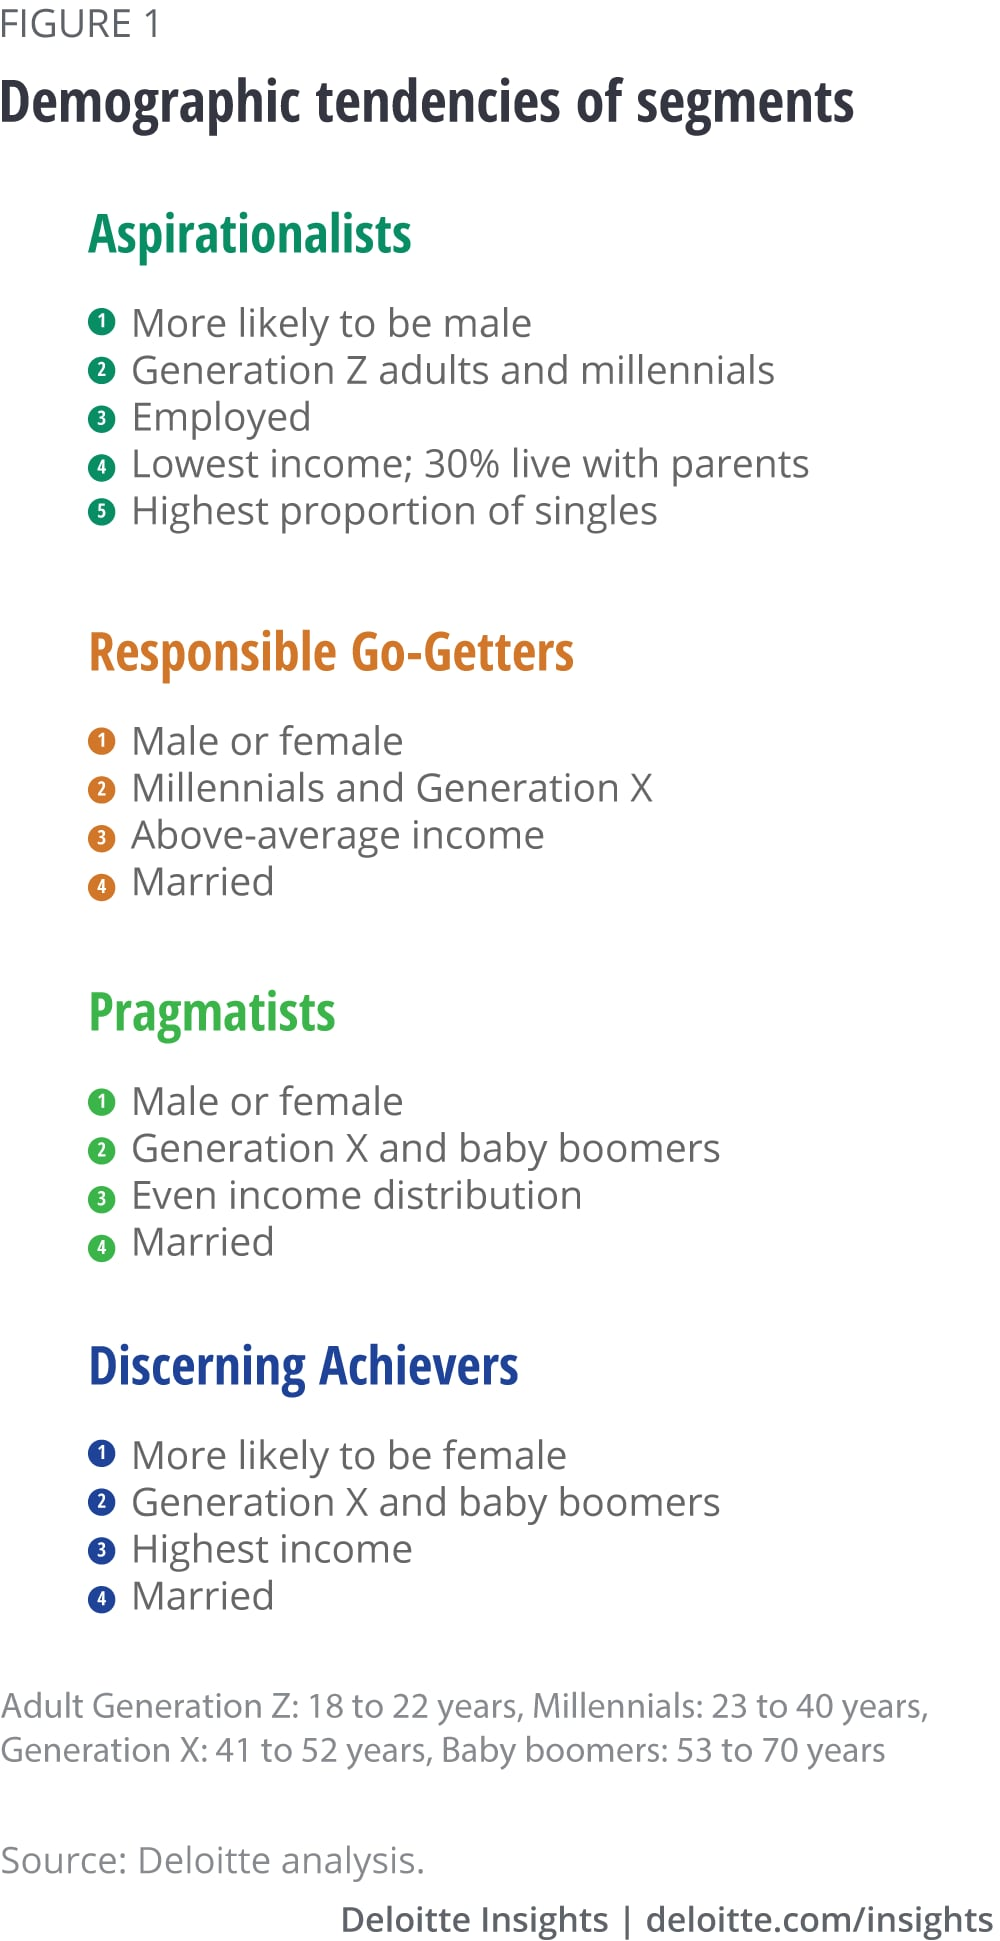 Demographic tendencies of segments